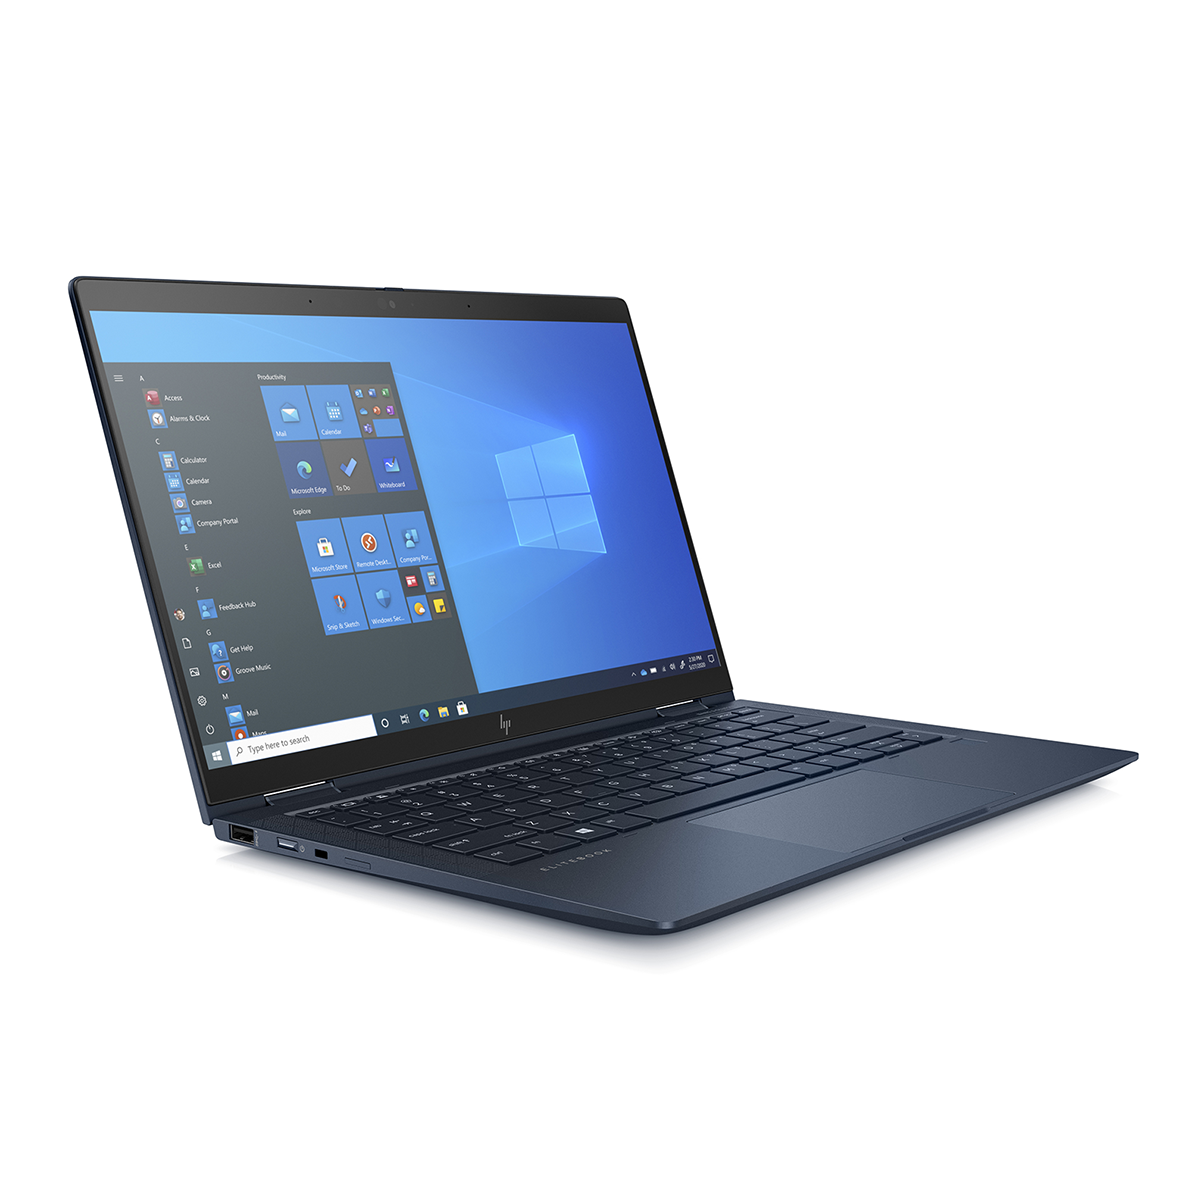 The HP ZBook Firefly